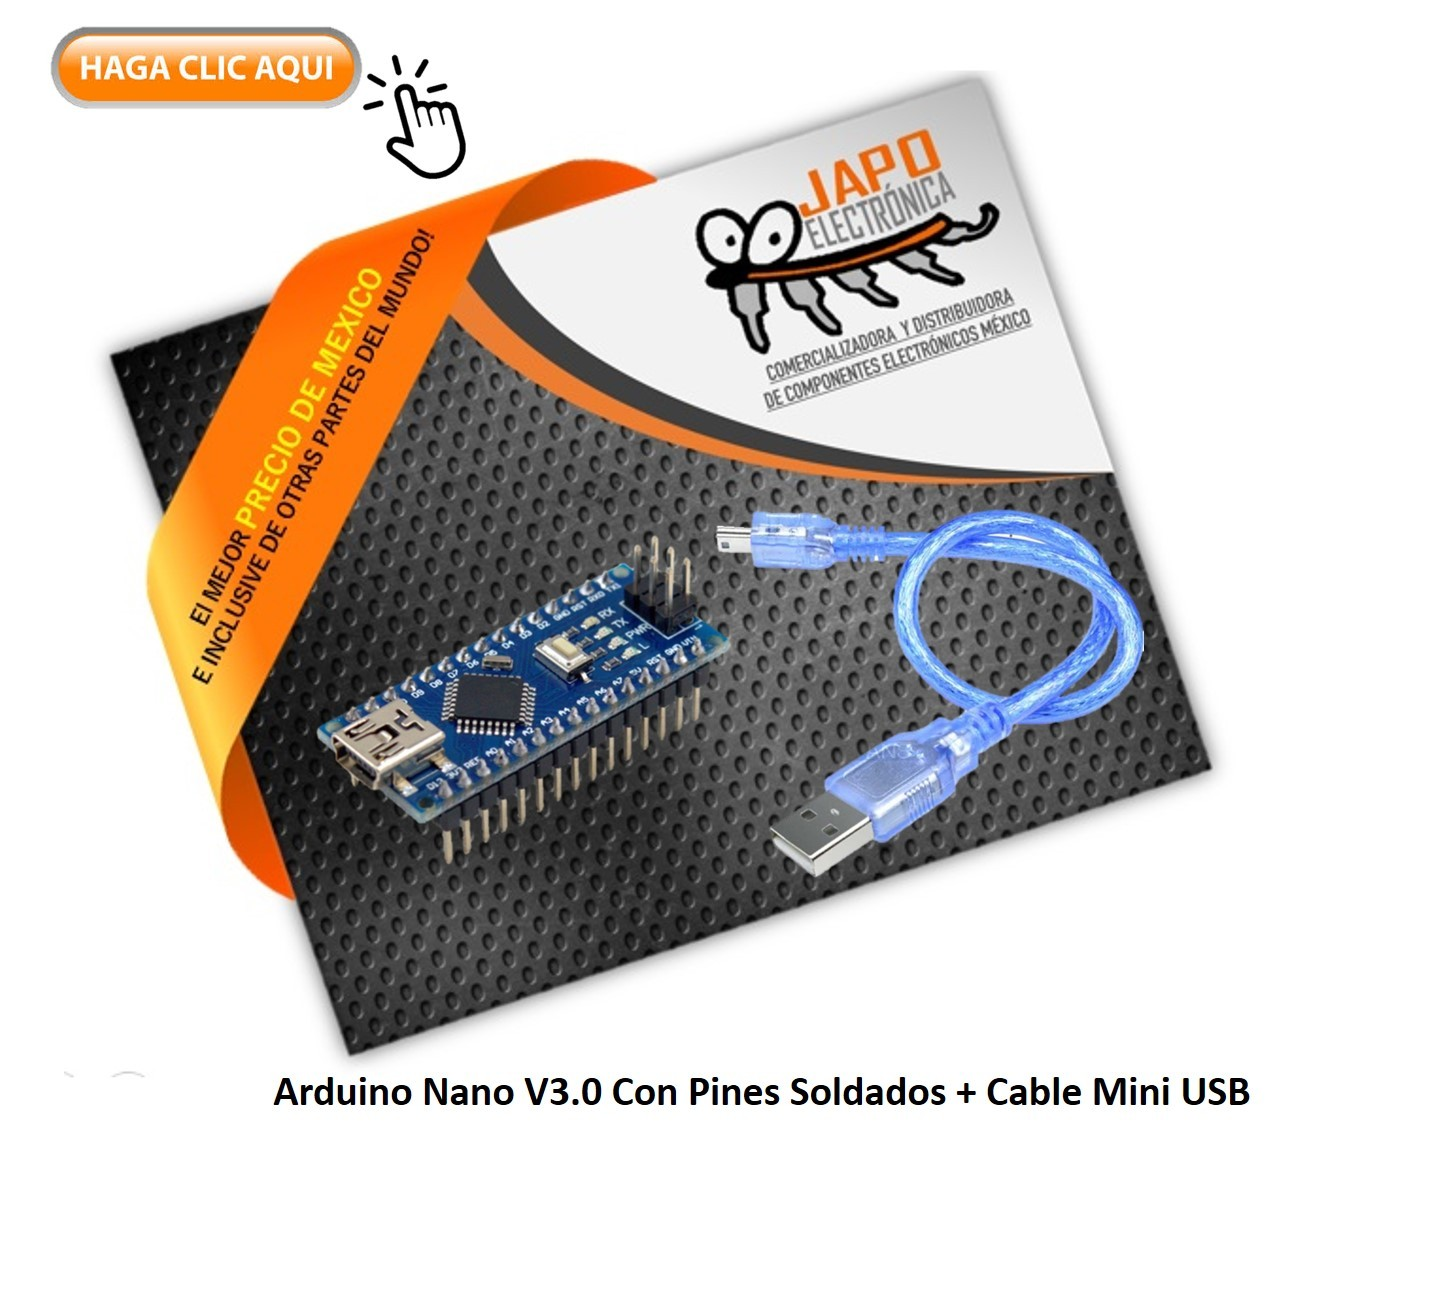 Arduino Nano V3.0 Con Pines soldados + Cable Mini USB